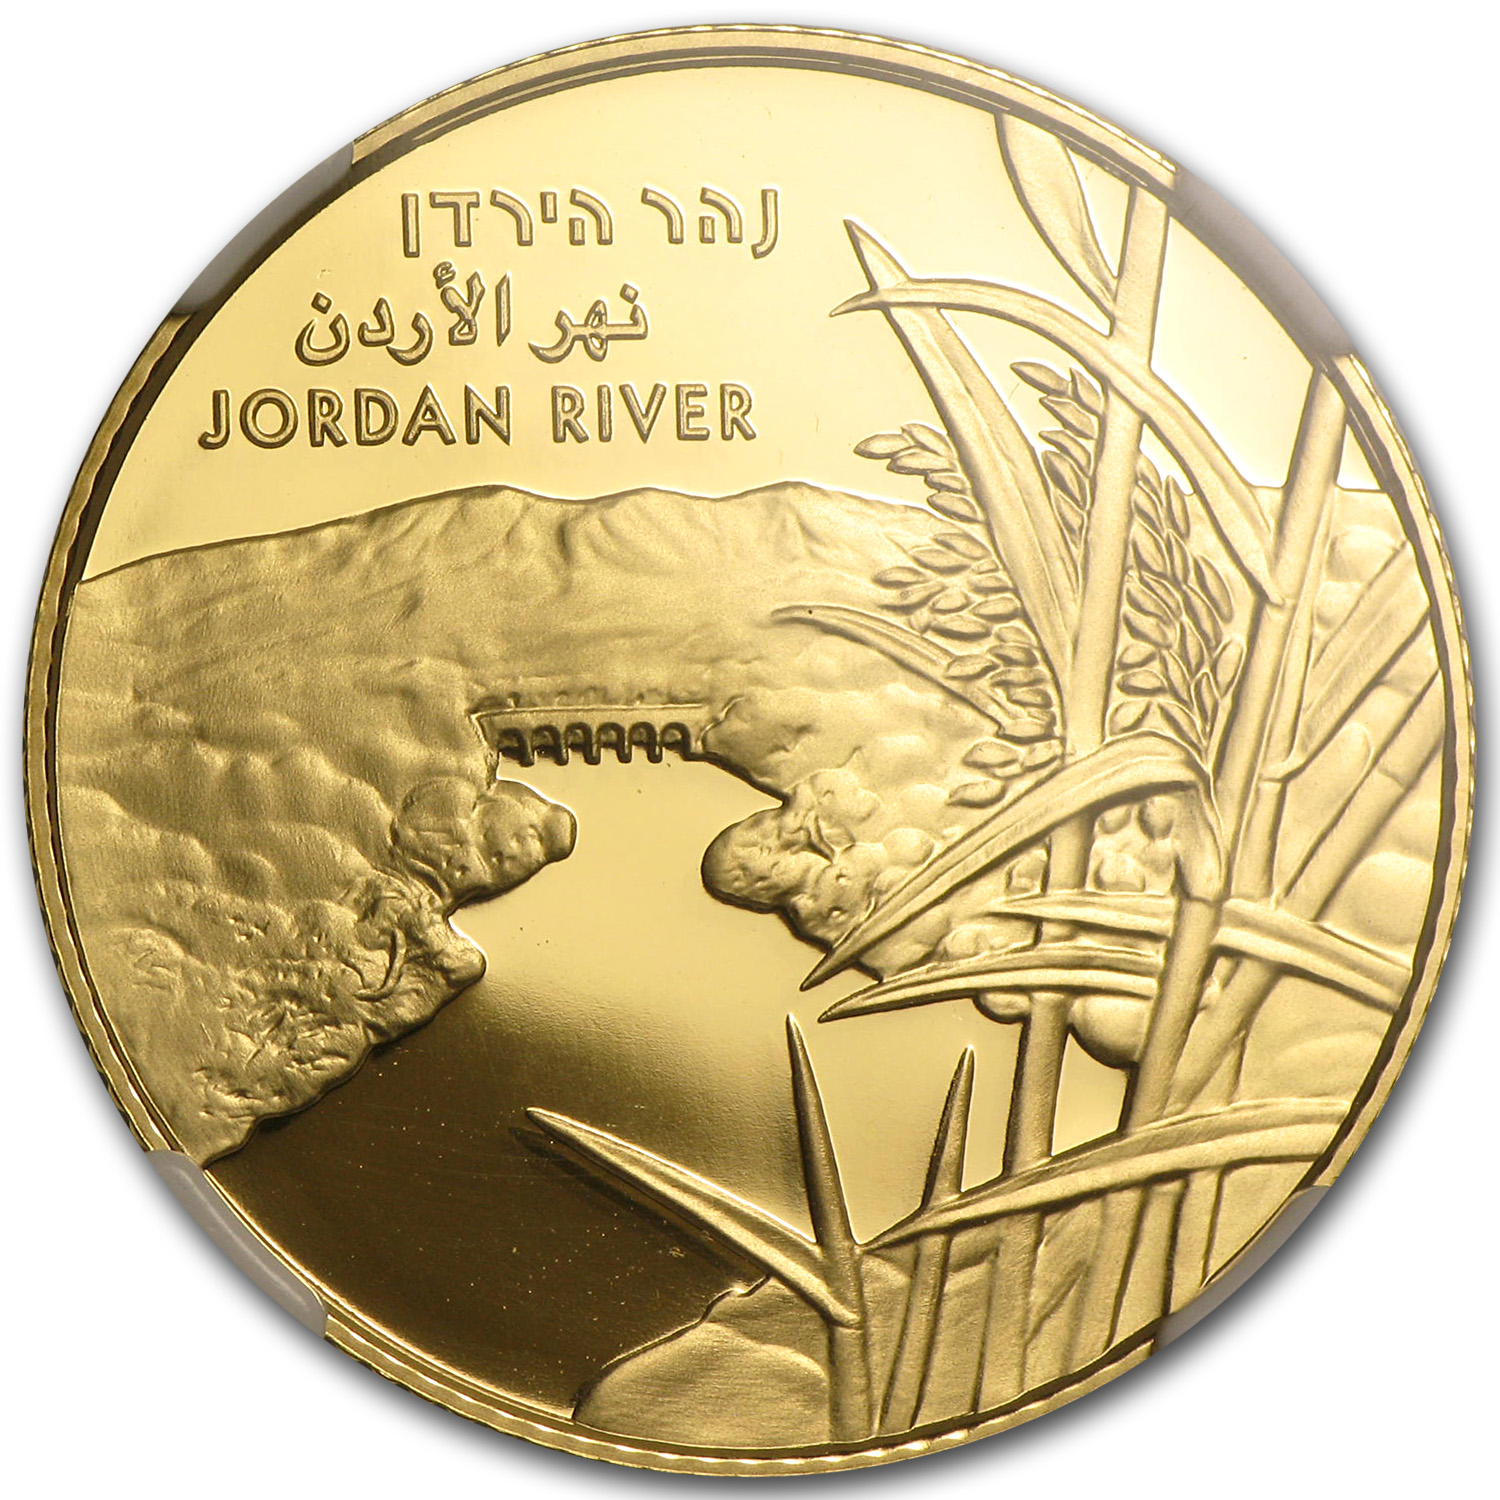 2013 Israel The Jordan River 1/2 oz PF-69 UCAM ER NGC